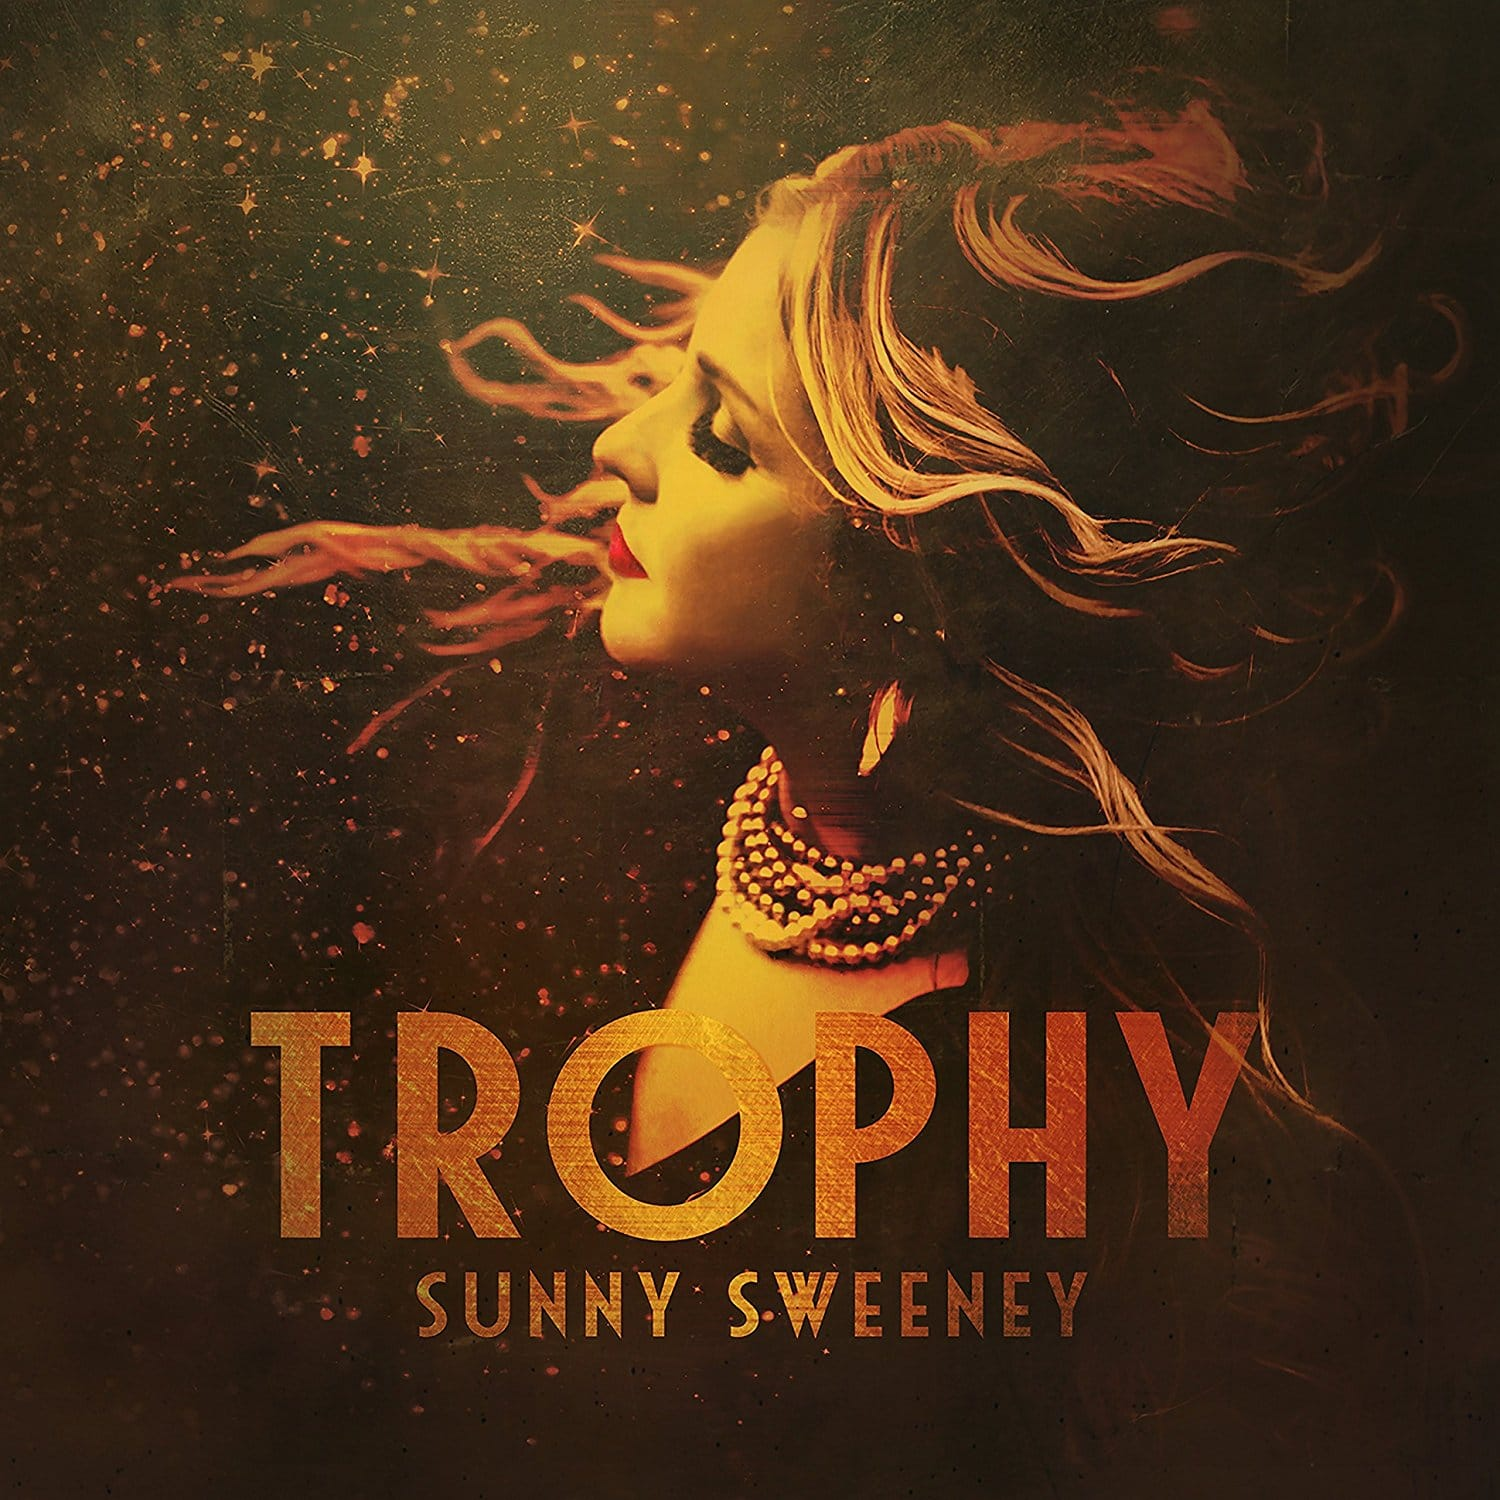 Image result for trophy sunny sweeney